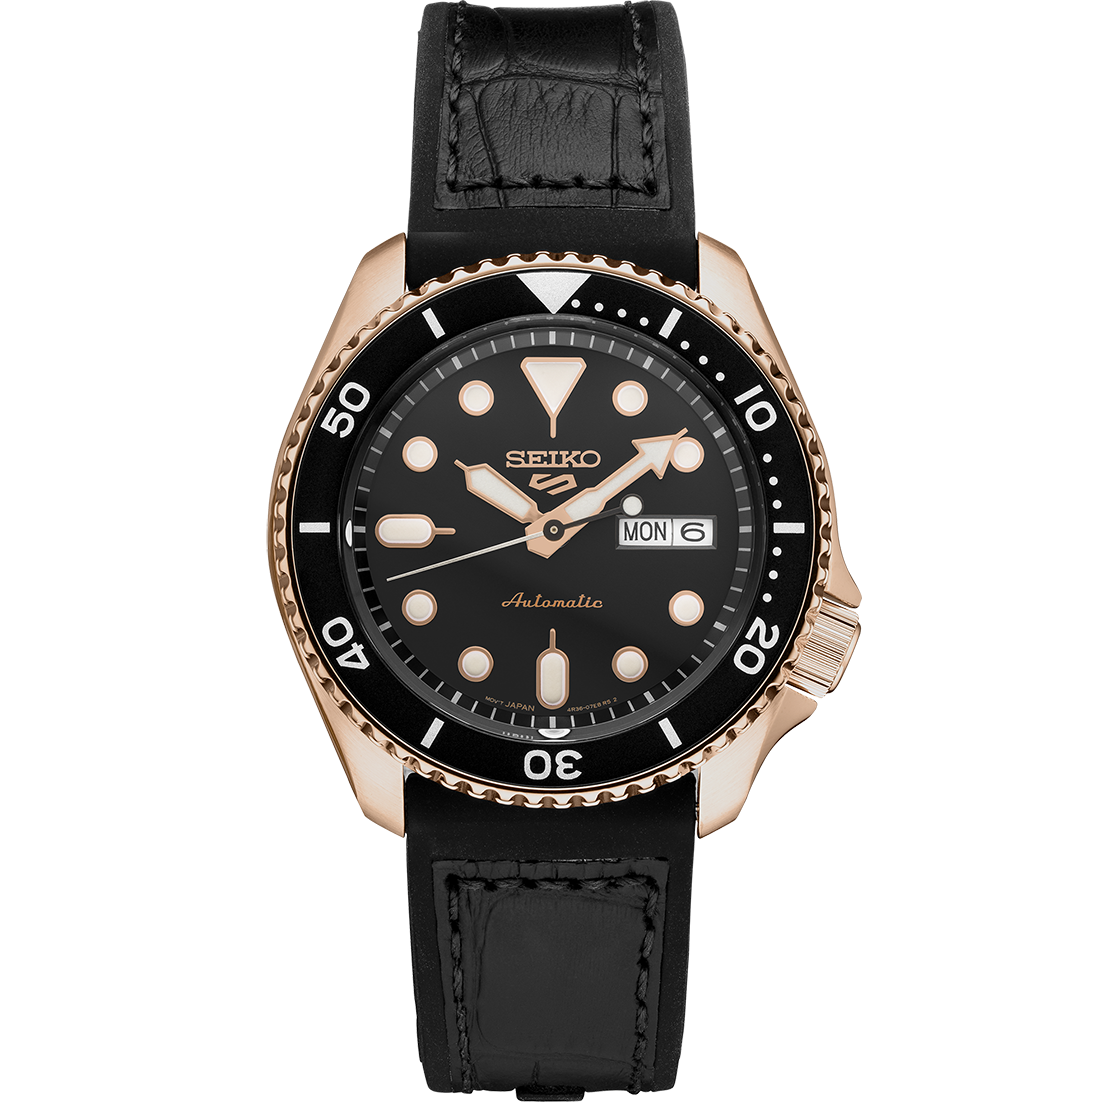 Seiko 5 Mens SRPD76 Black Dial Automatic Silicone Band Watch